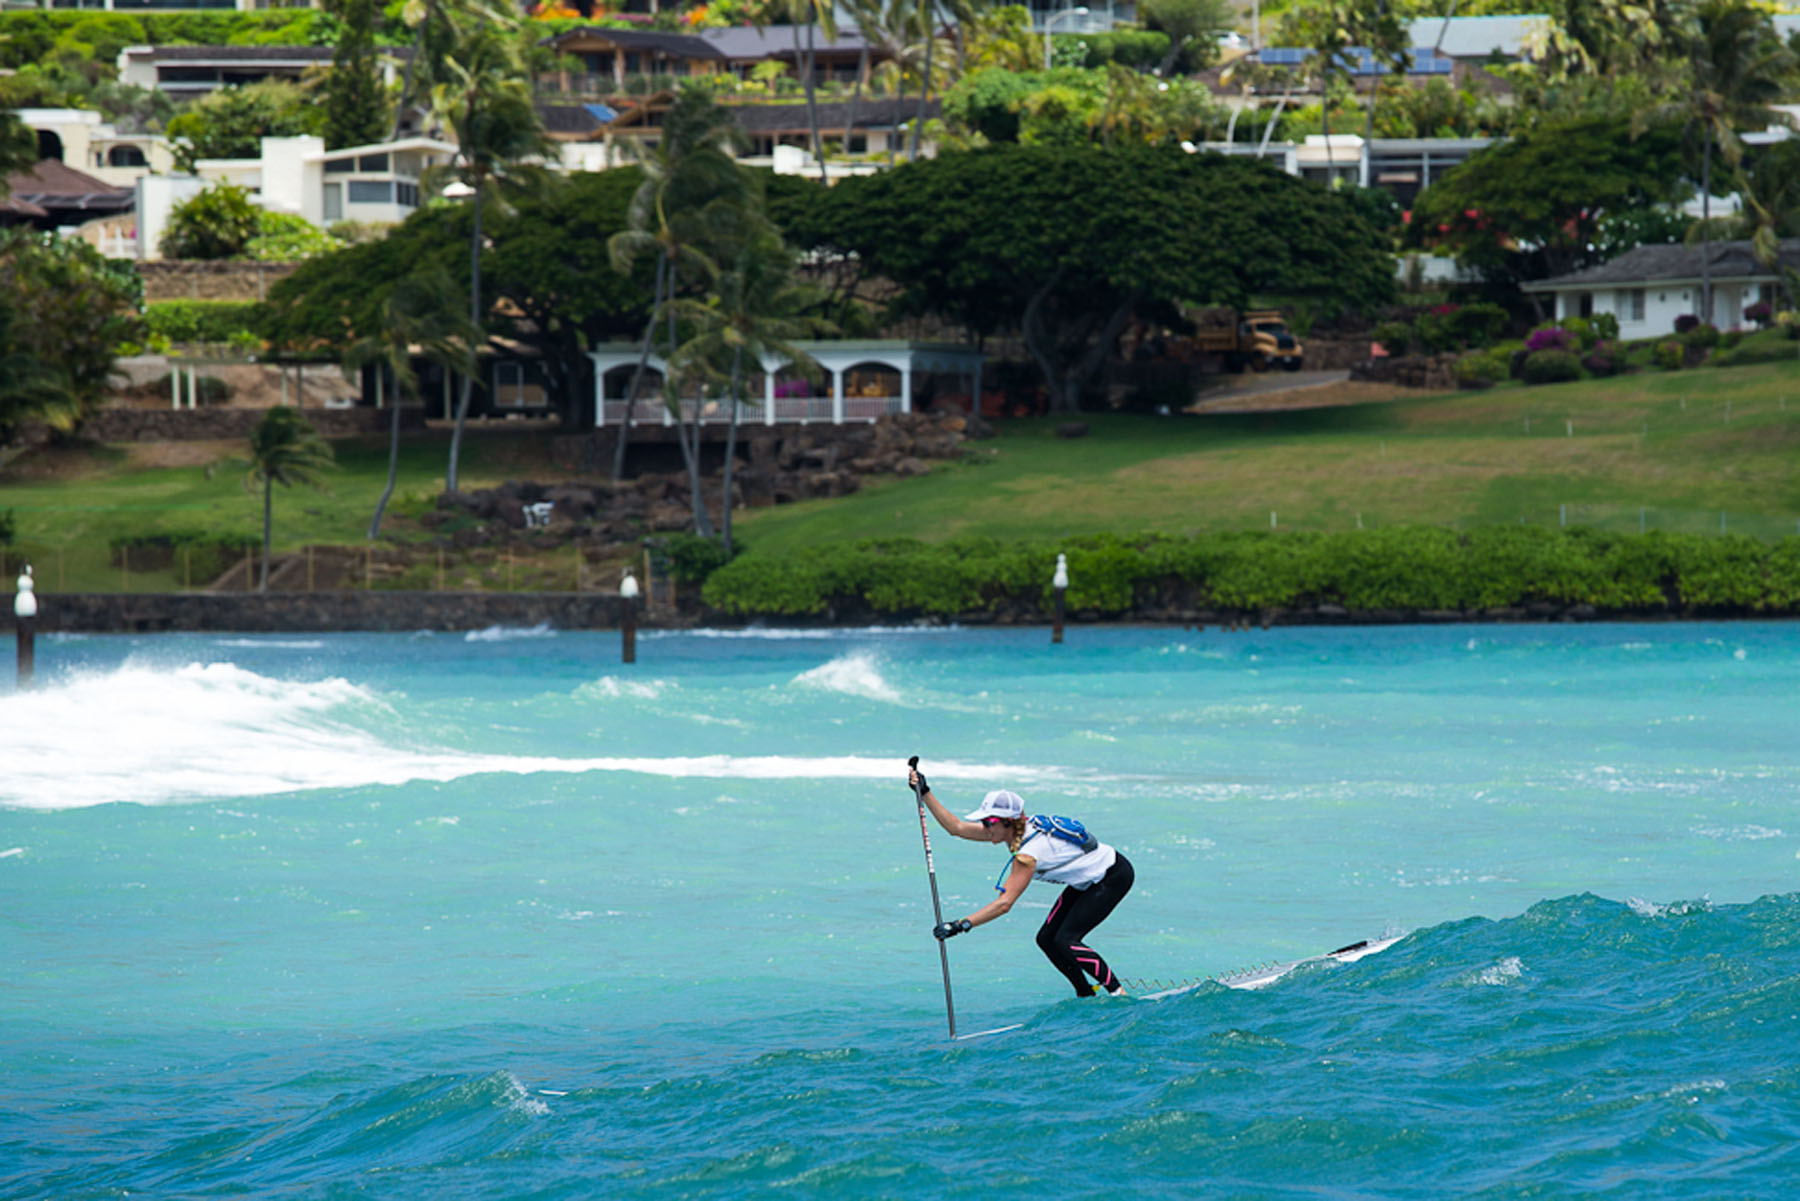 Top 10 tips to prepare for race day at the Molokai2Oahu Paddleboard World Championships